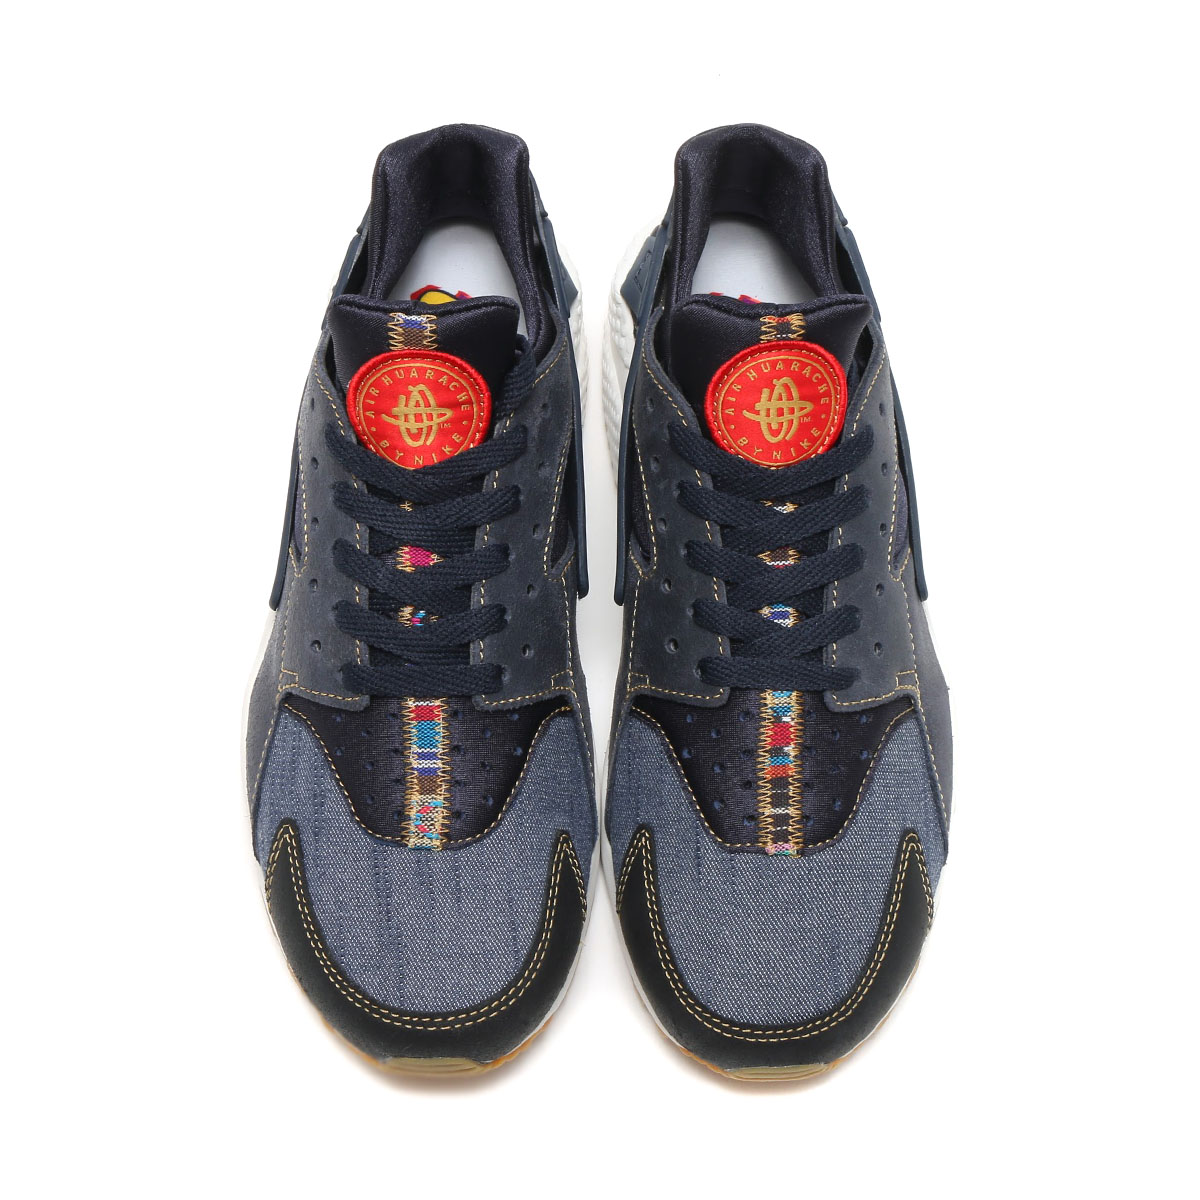 NIKE AIR HUARACHE RUN SE (나이키에아하라치란 SE) (DARK OBSIDIAN/DARK OBSIDIAN-SUMMIT WHITE) 17 SU-S